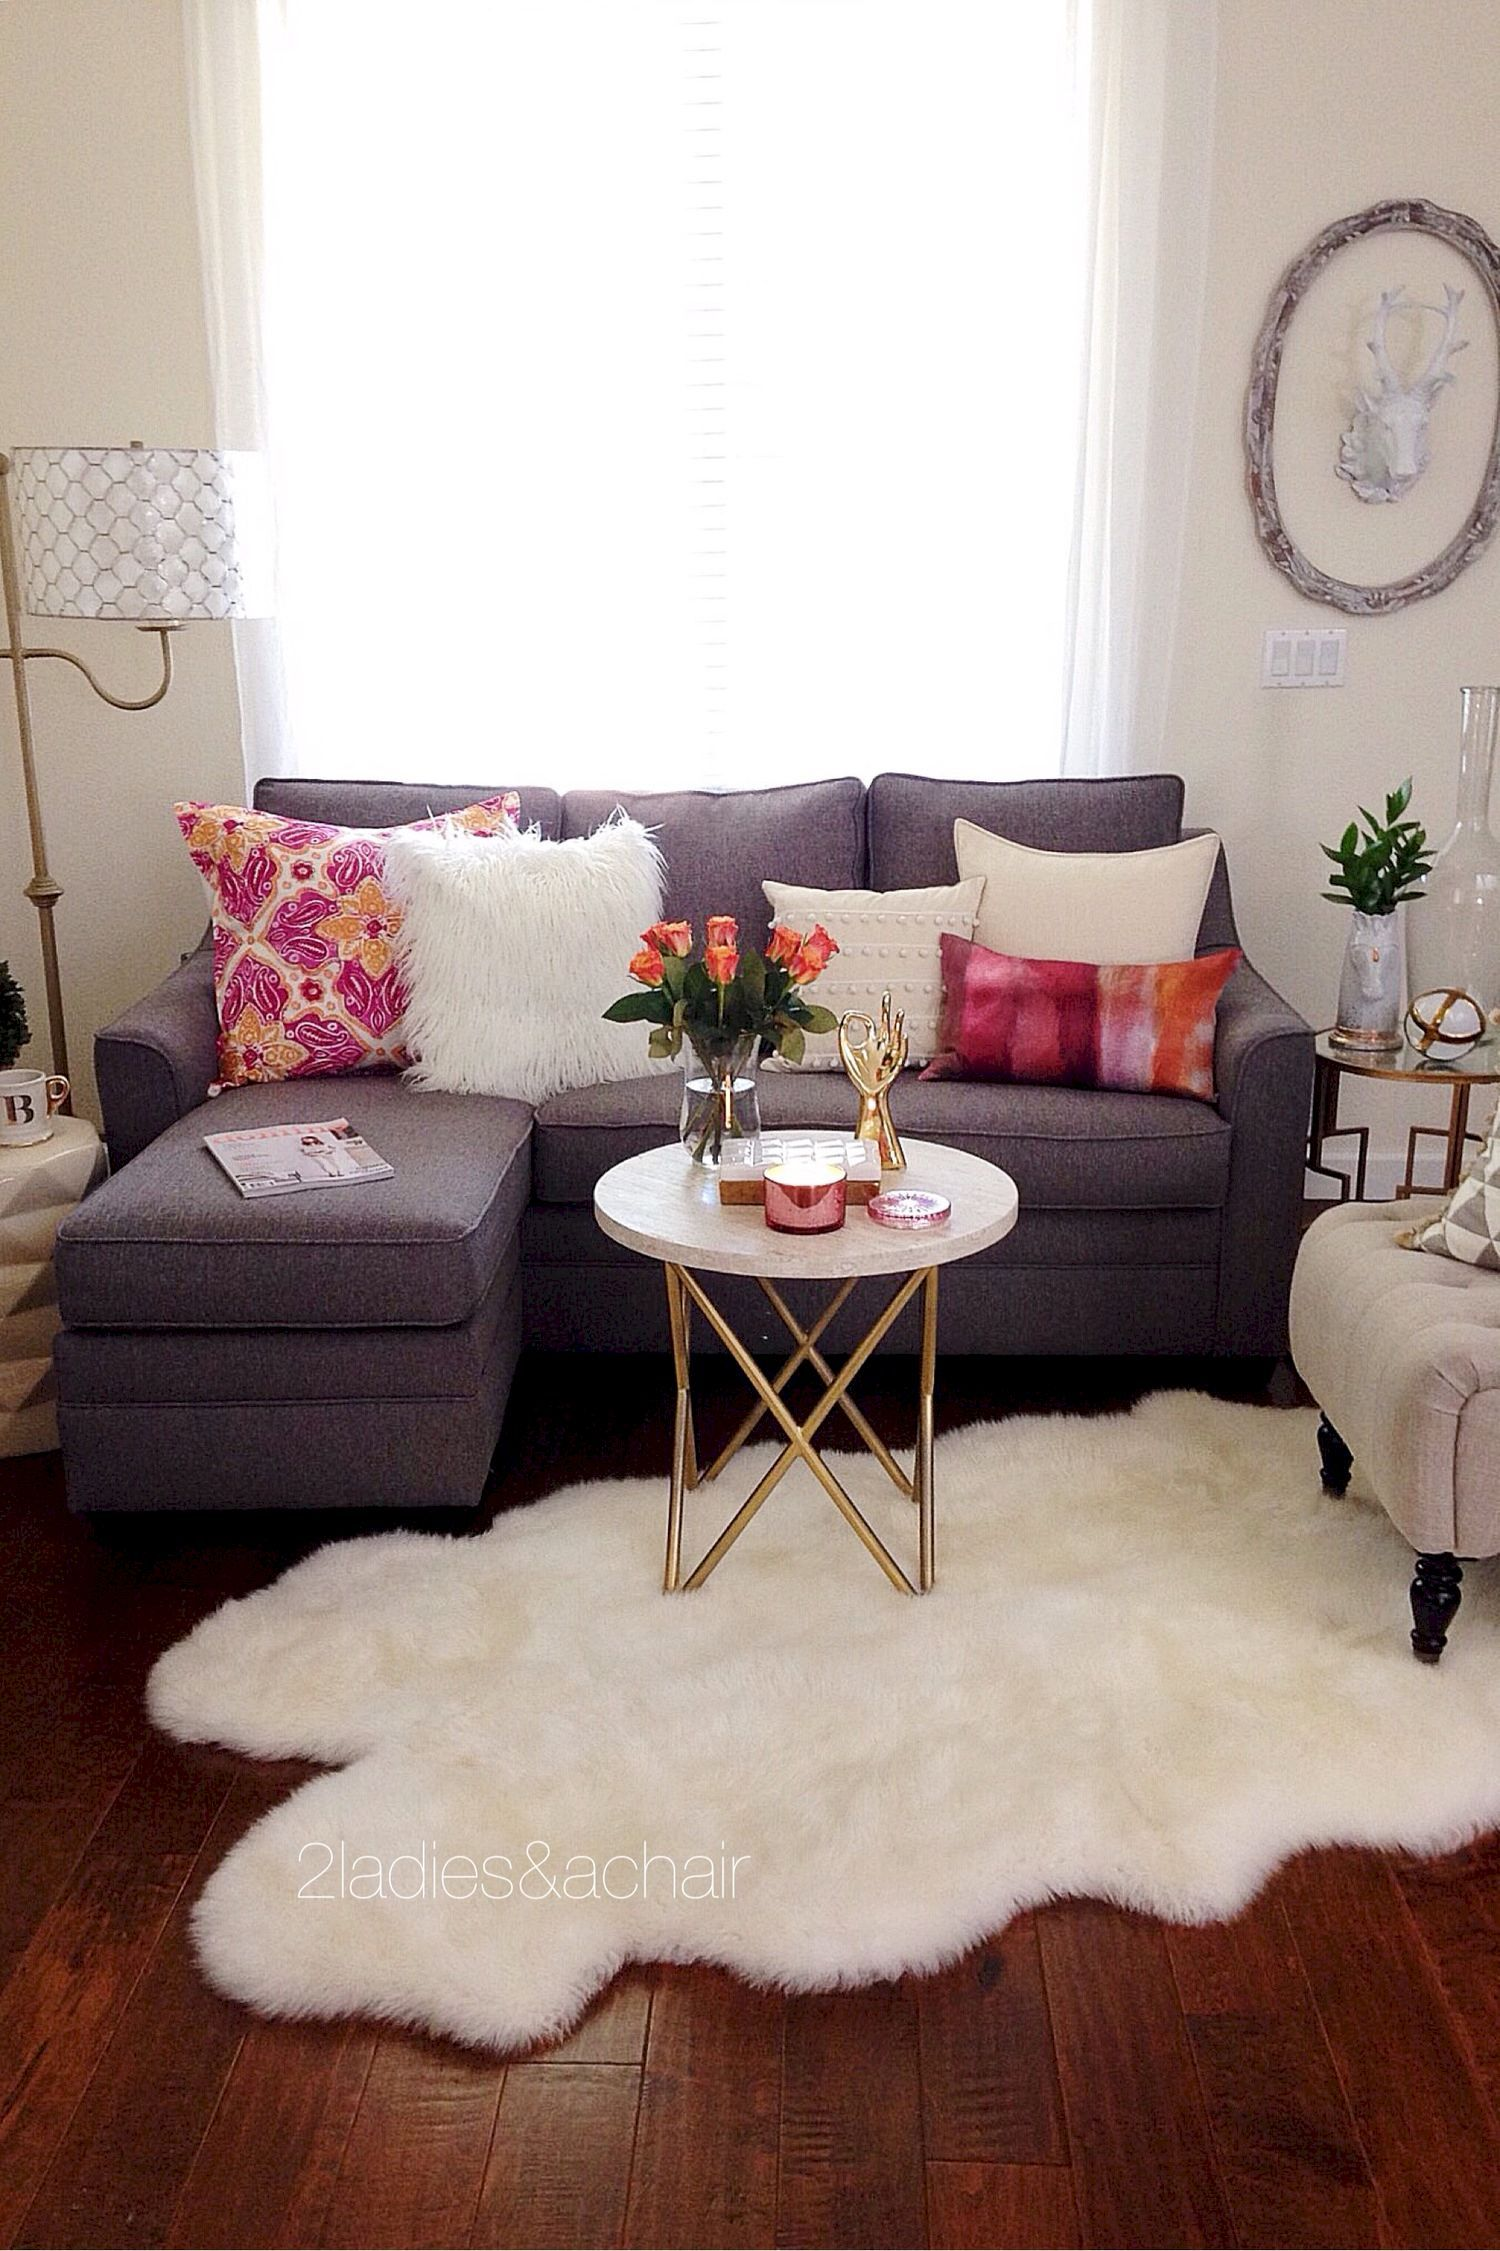 The Best Diy Apartment Small Living Room Ideas On A Budget 159 First Apartment Decorating Small Apartment Decorating Small Apartment Living Room